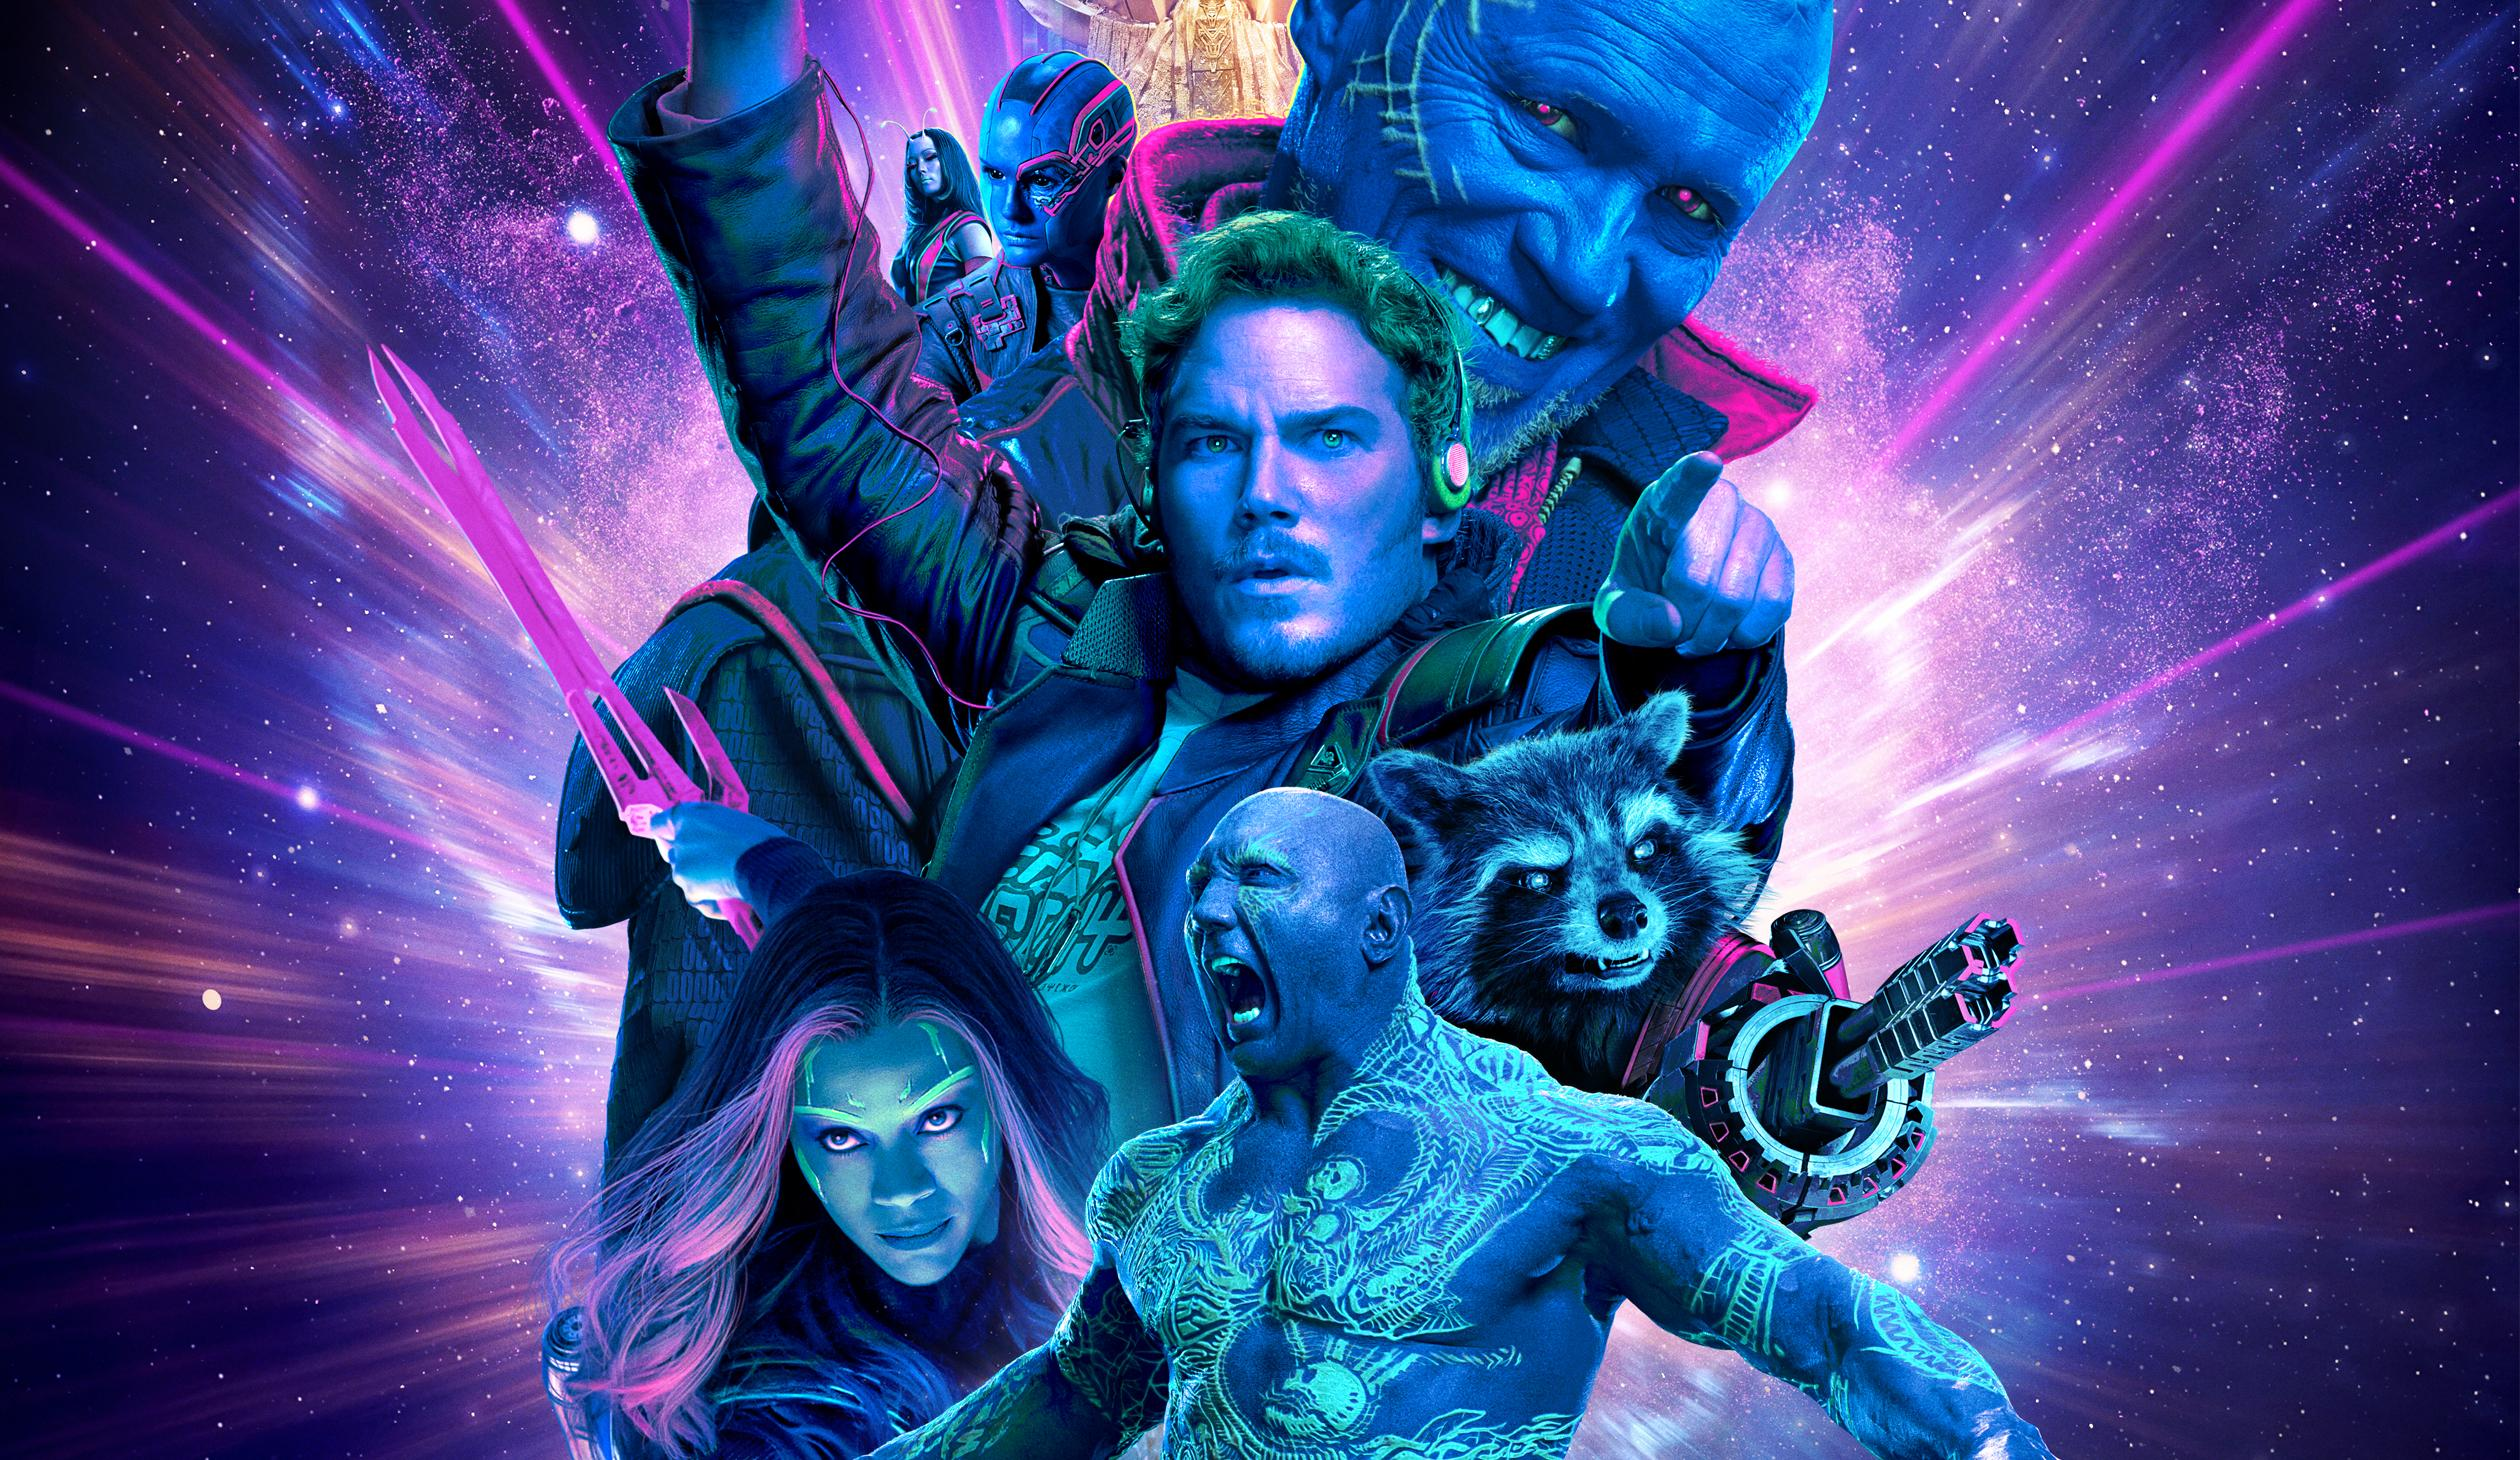 Guardians Of The Galaxy 2 Desktop Wallpaper: Guardians Of The Galaxy Vol 2 Imax, HD Movies, 4k